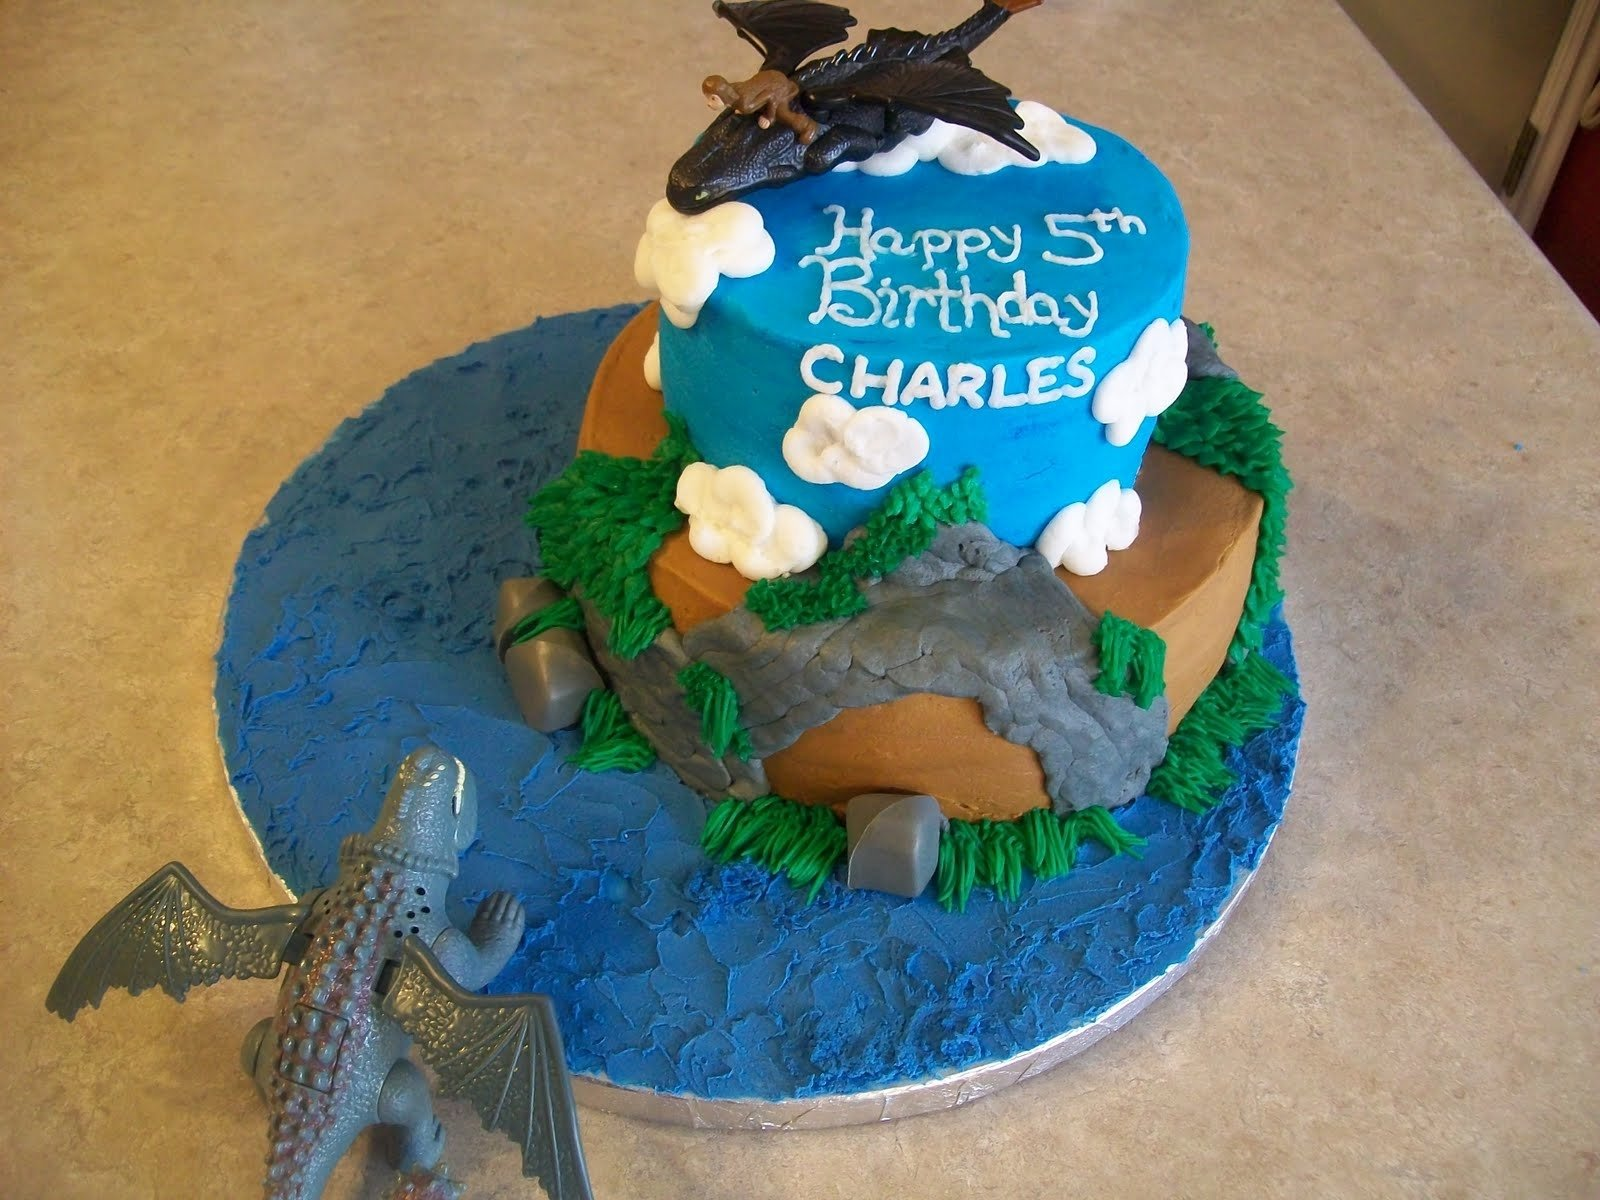 10 Most Recommended How To Train Your Dragon Cake Ideas grateful for the ride how to train your dragon cake 2020